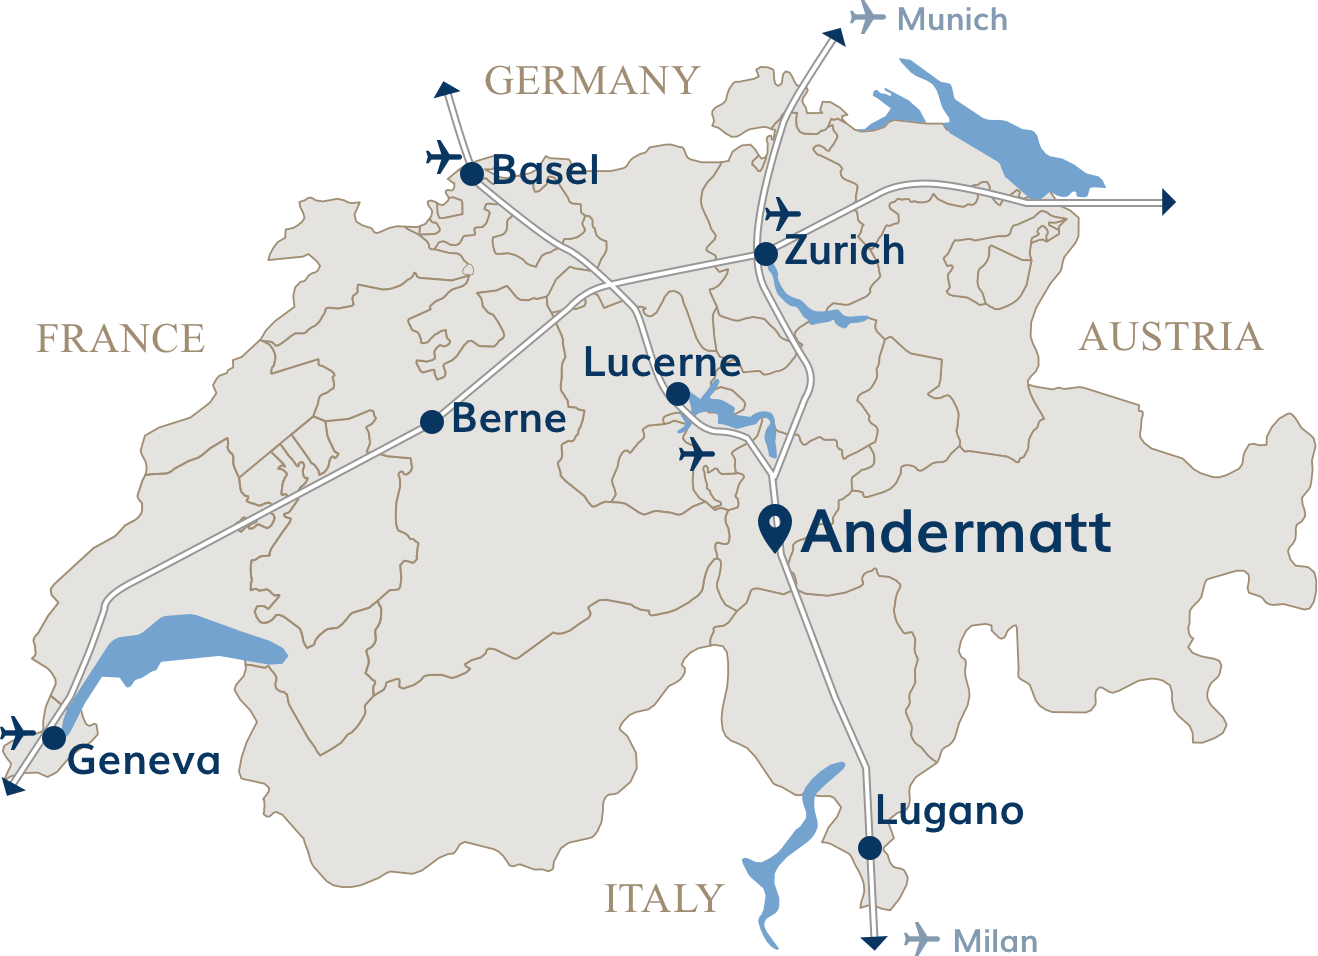 Location of Andermatt in Switzerland